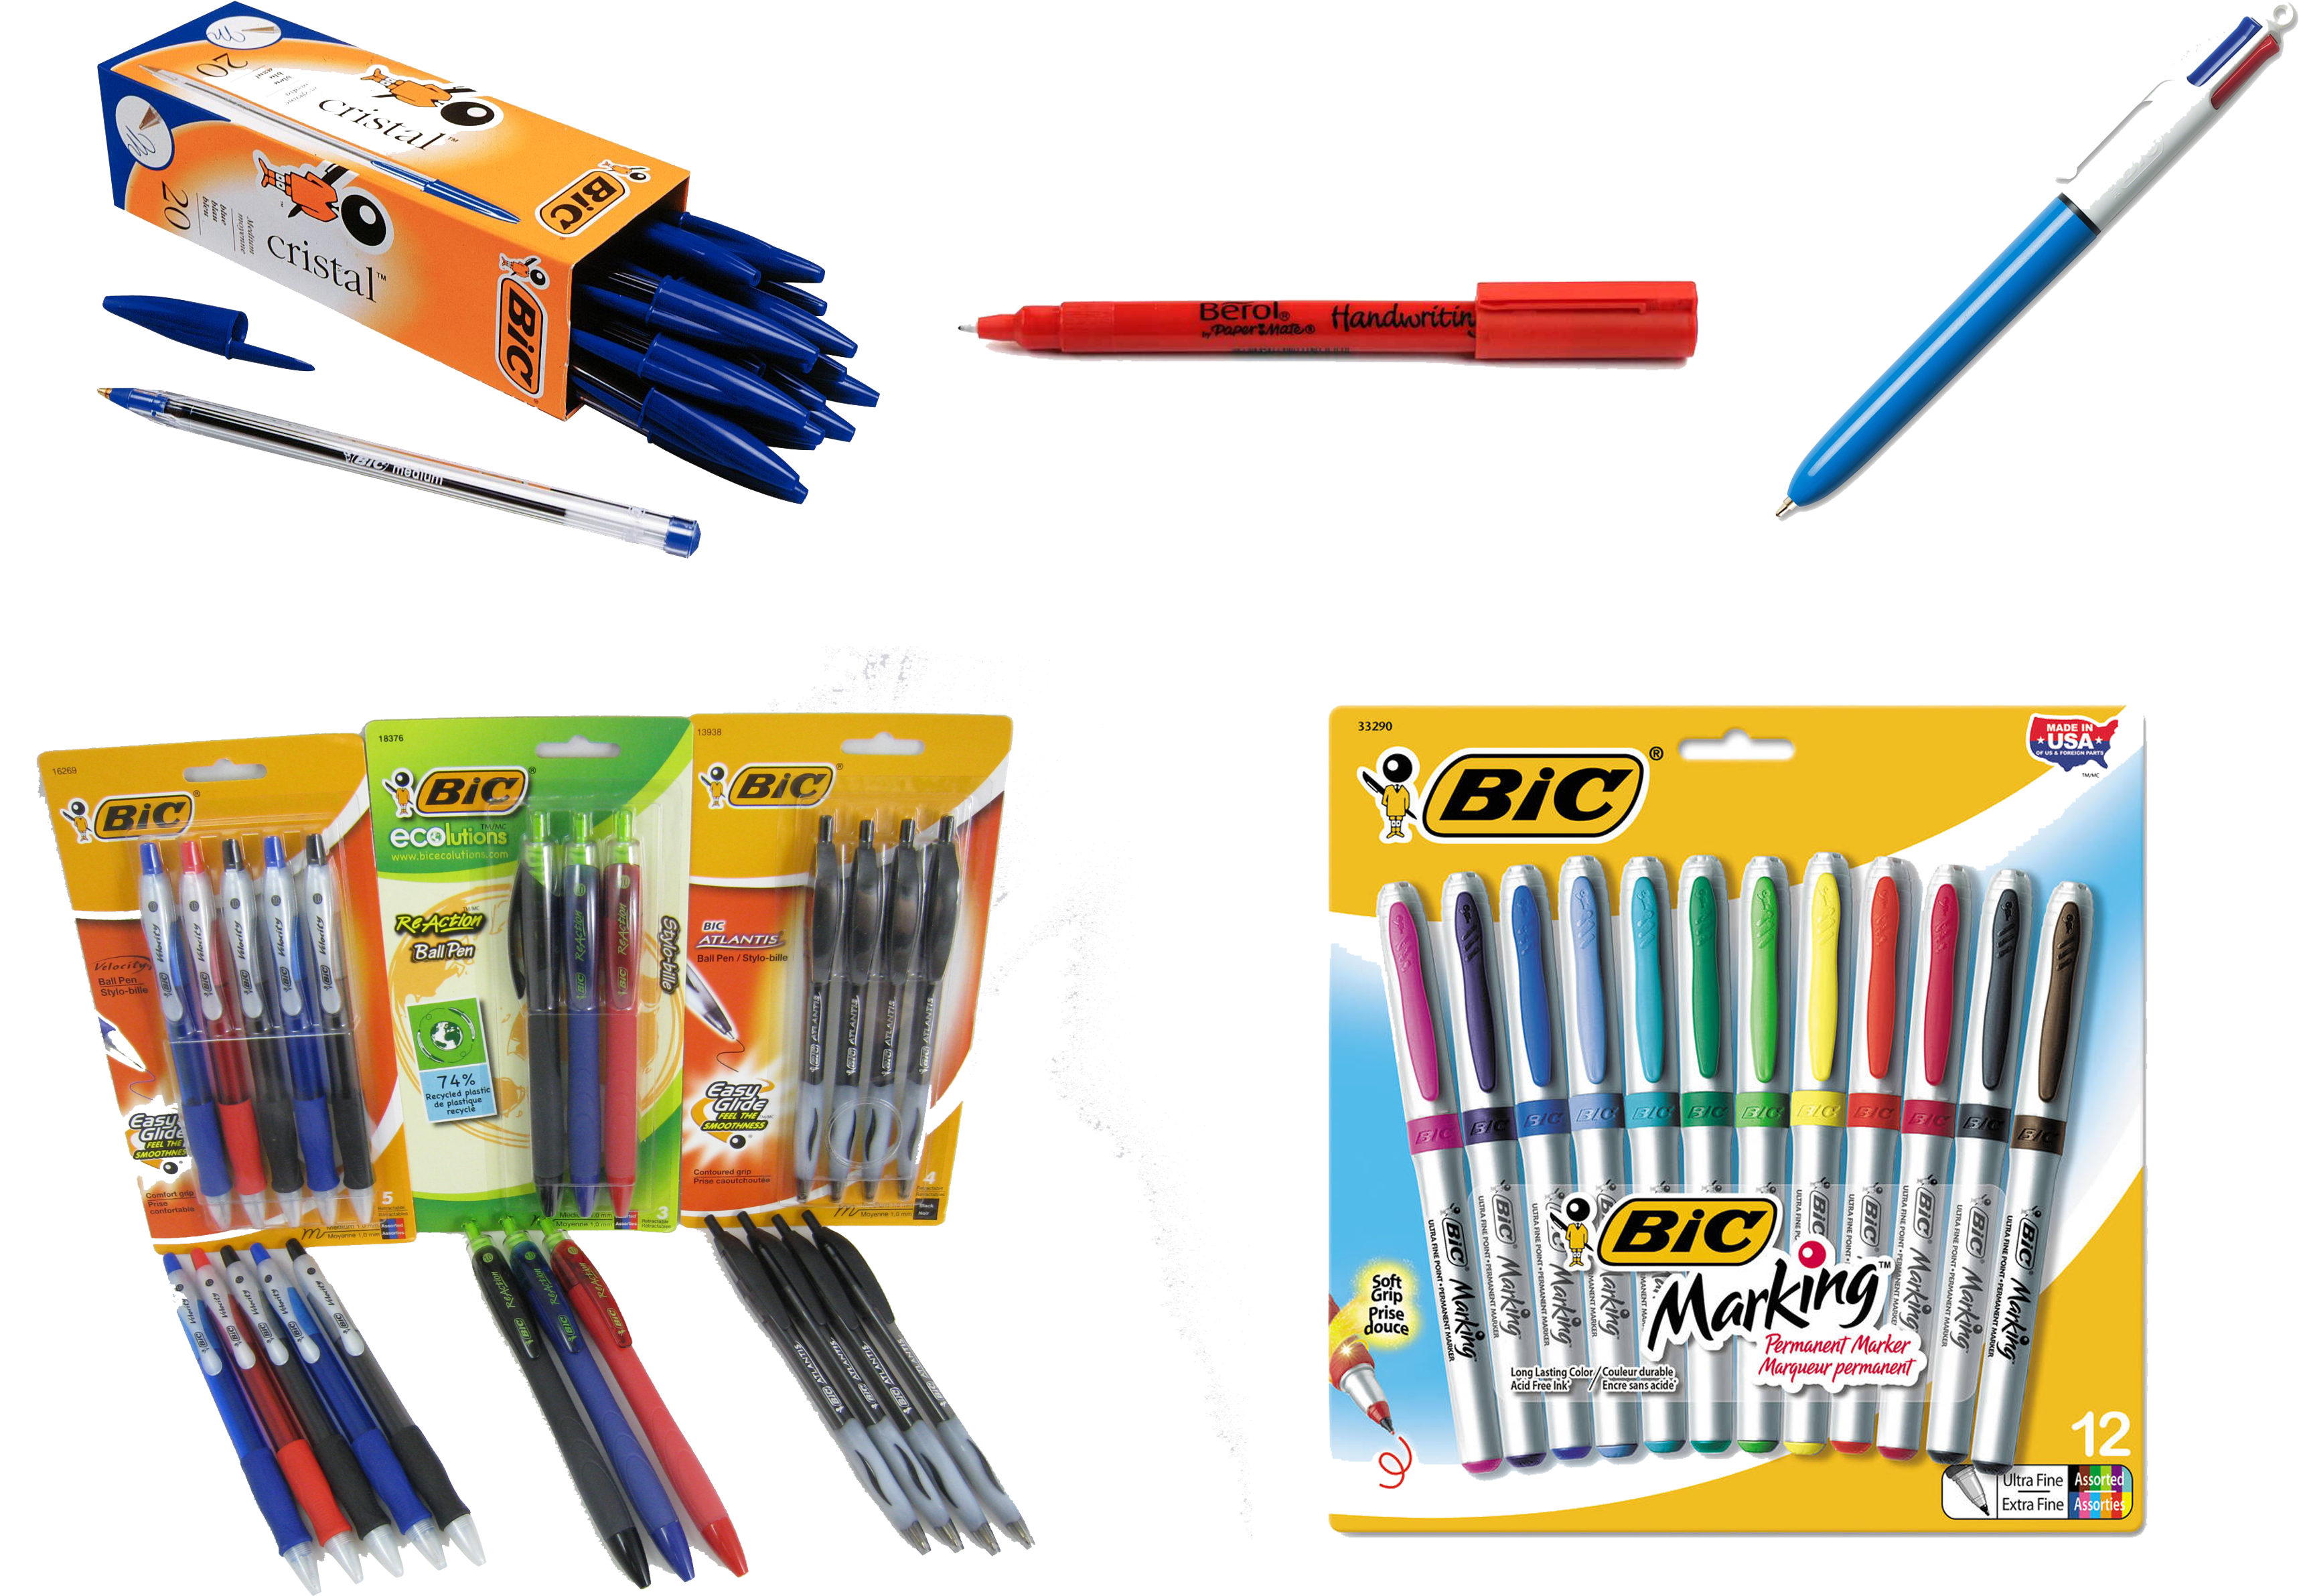 Download Hd Bic Page Bic Marking Permanent Marker Ultra